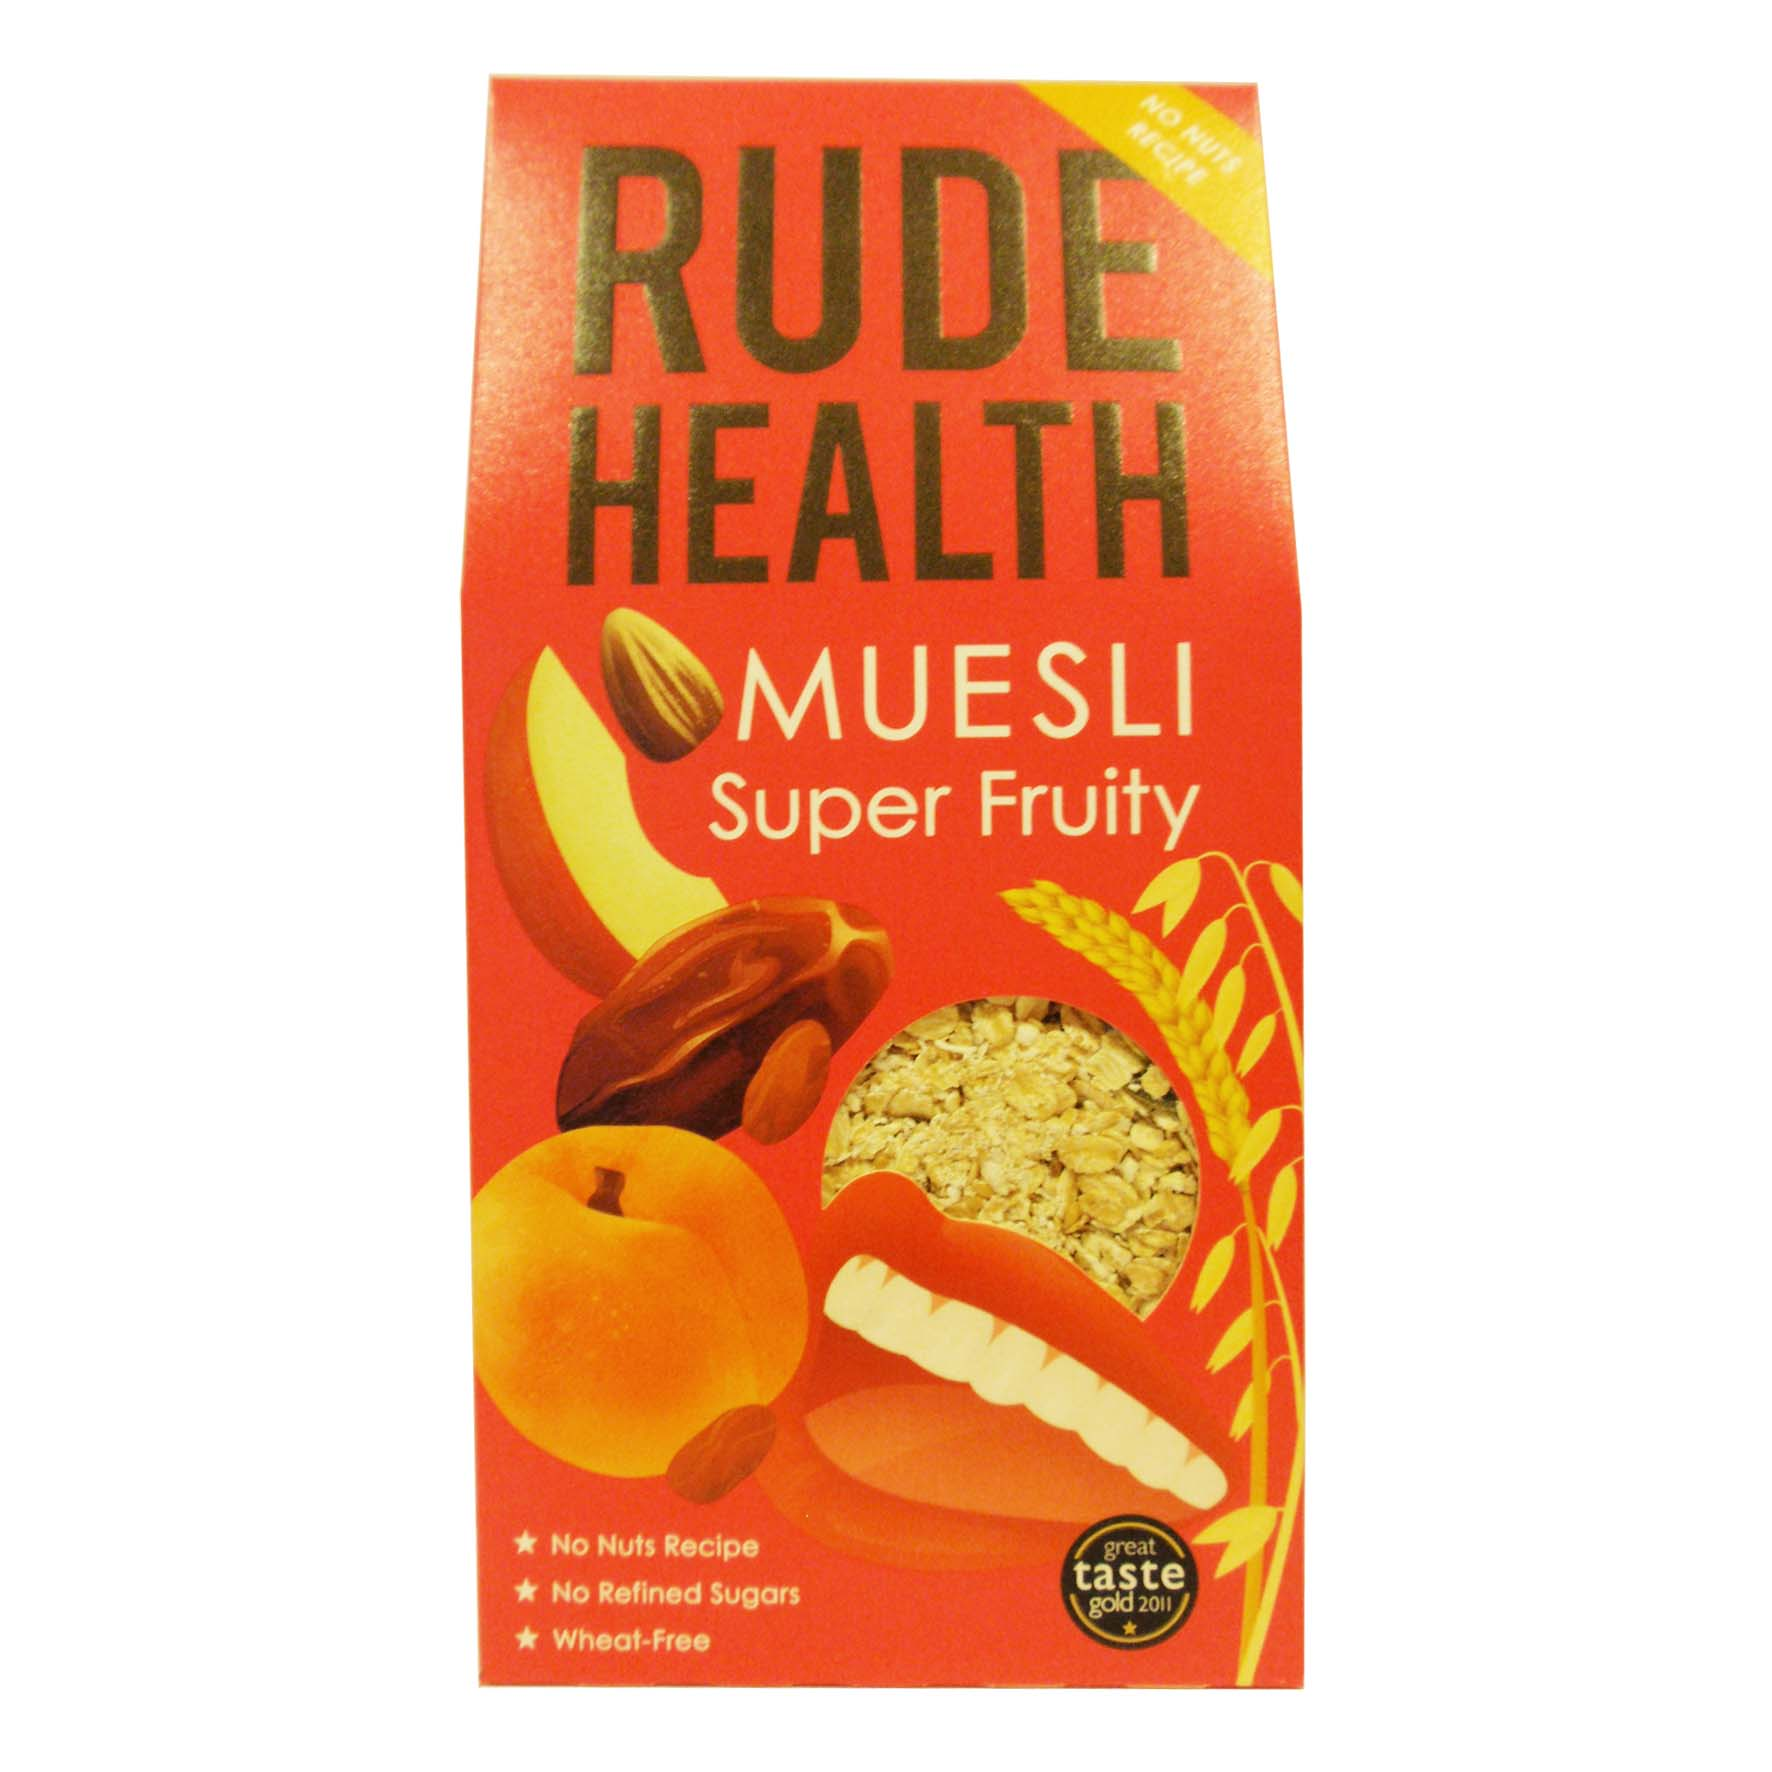 Rude health muesli super fruity 500g